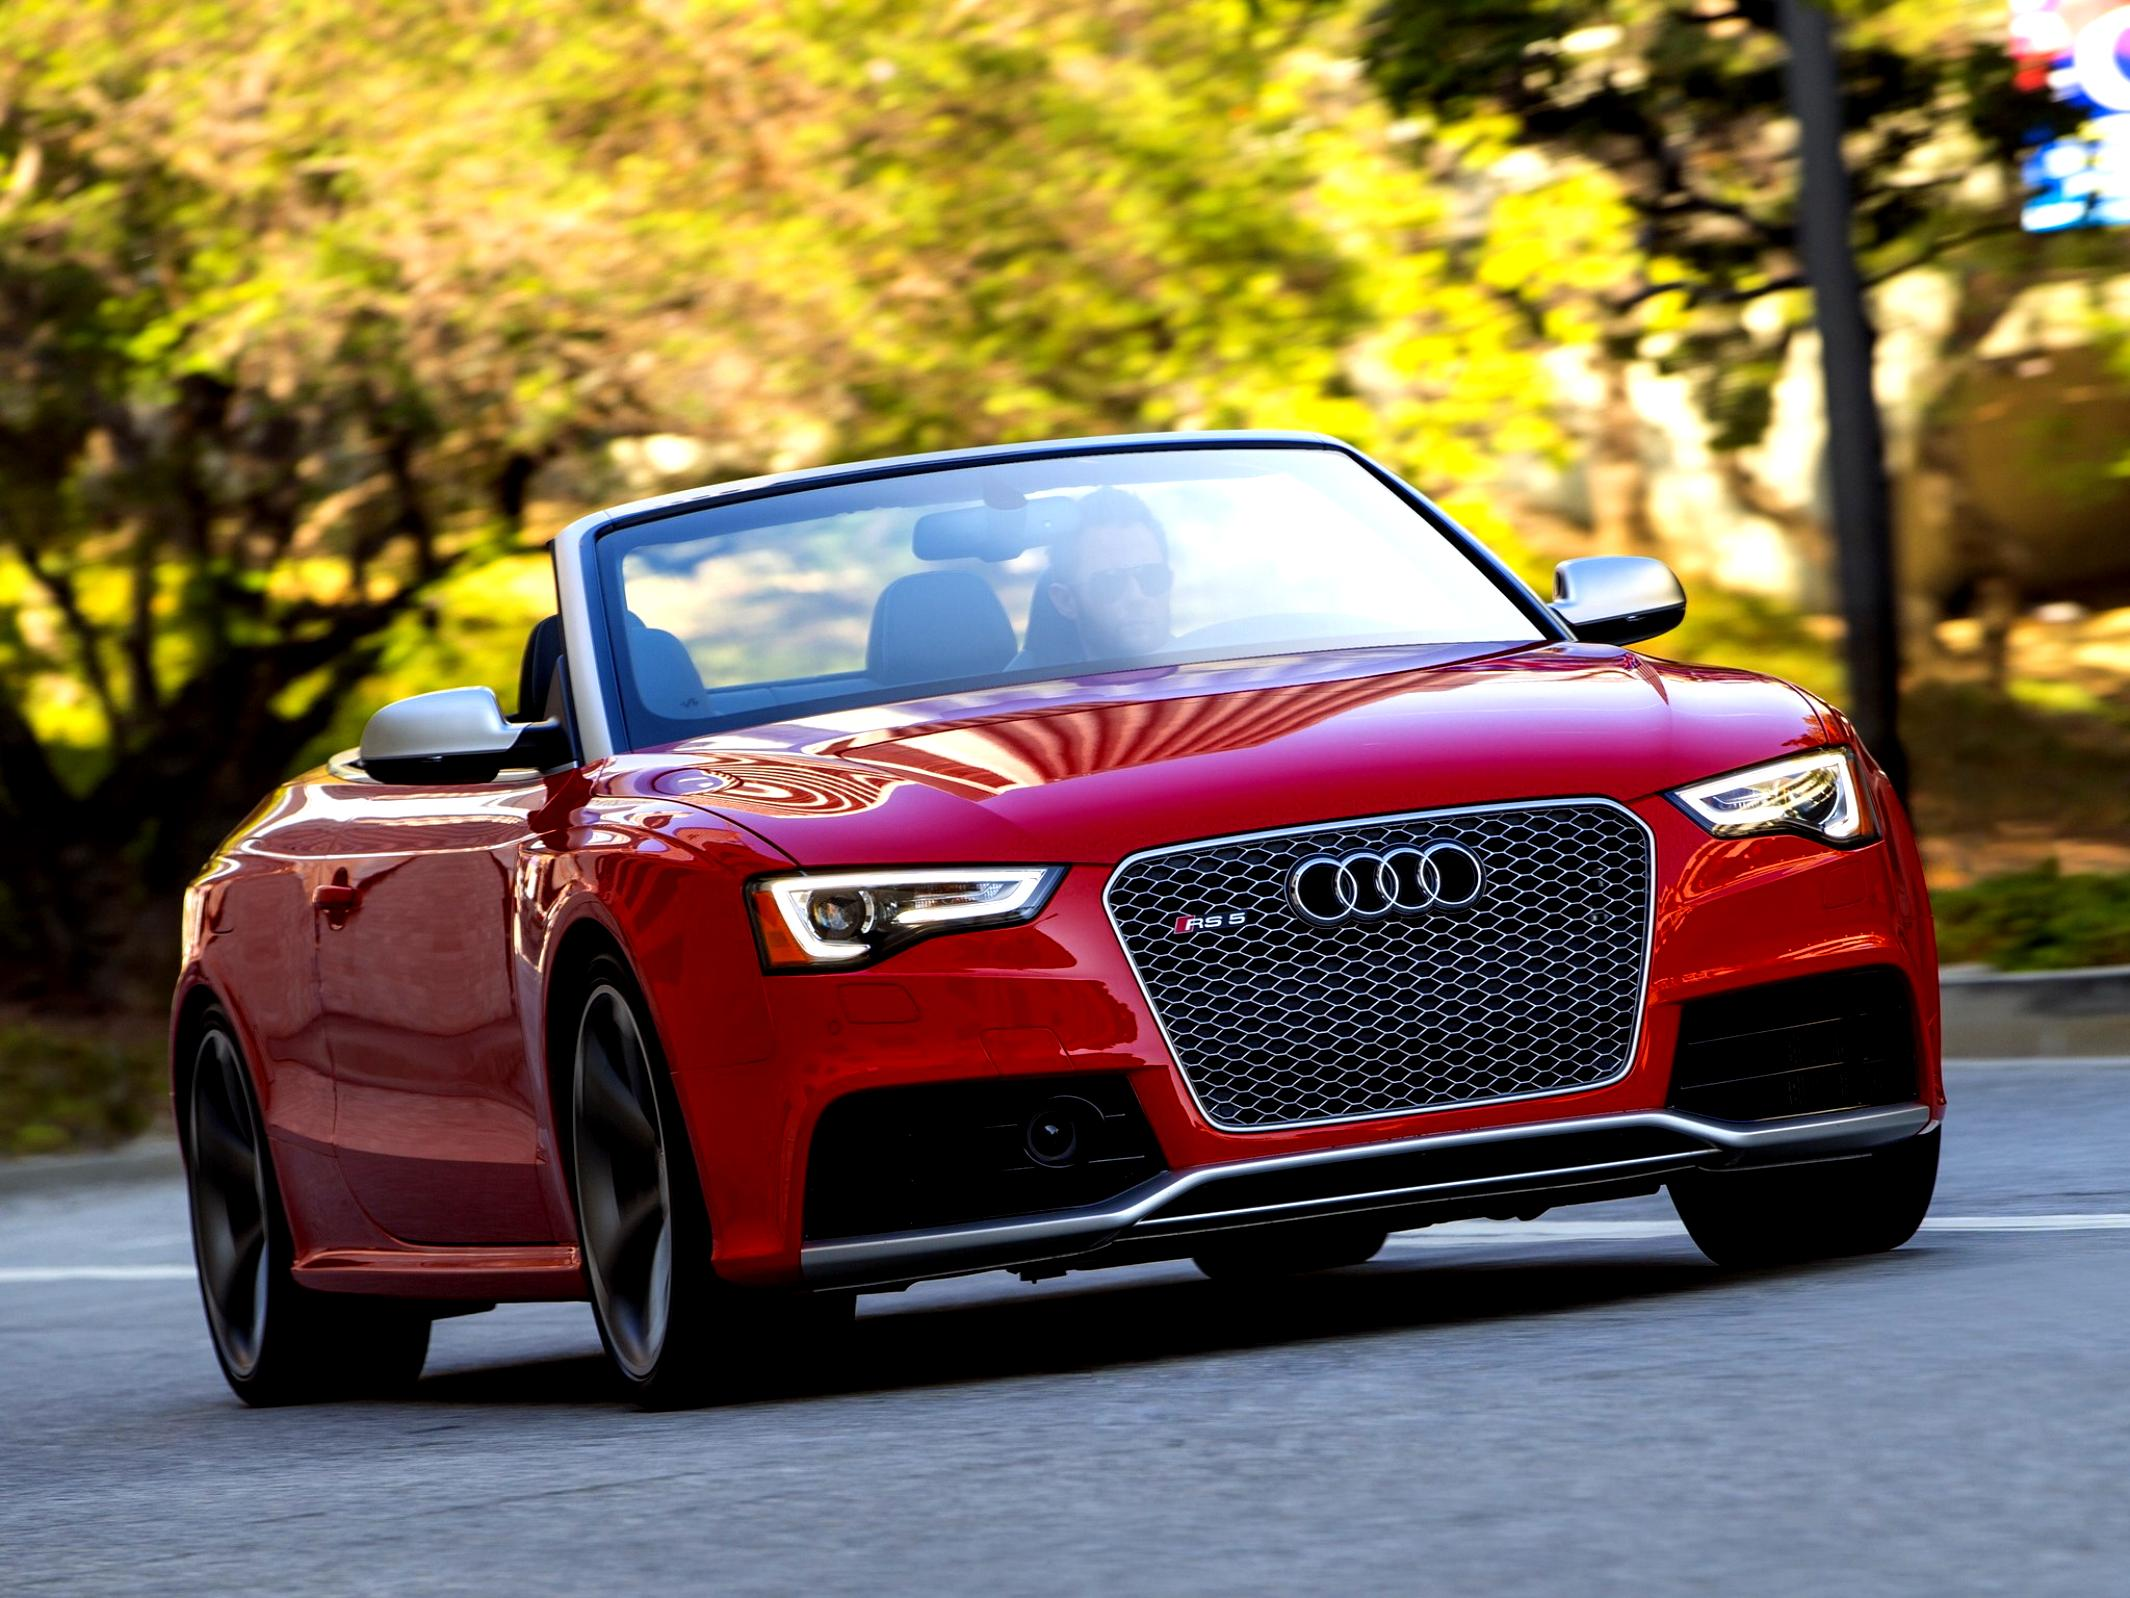 Audi RS5 Cabriolet 2013 #77